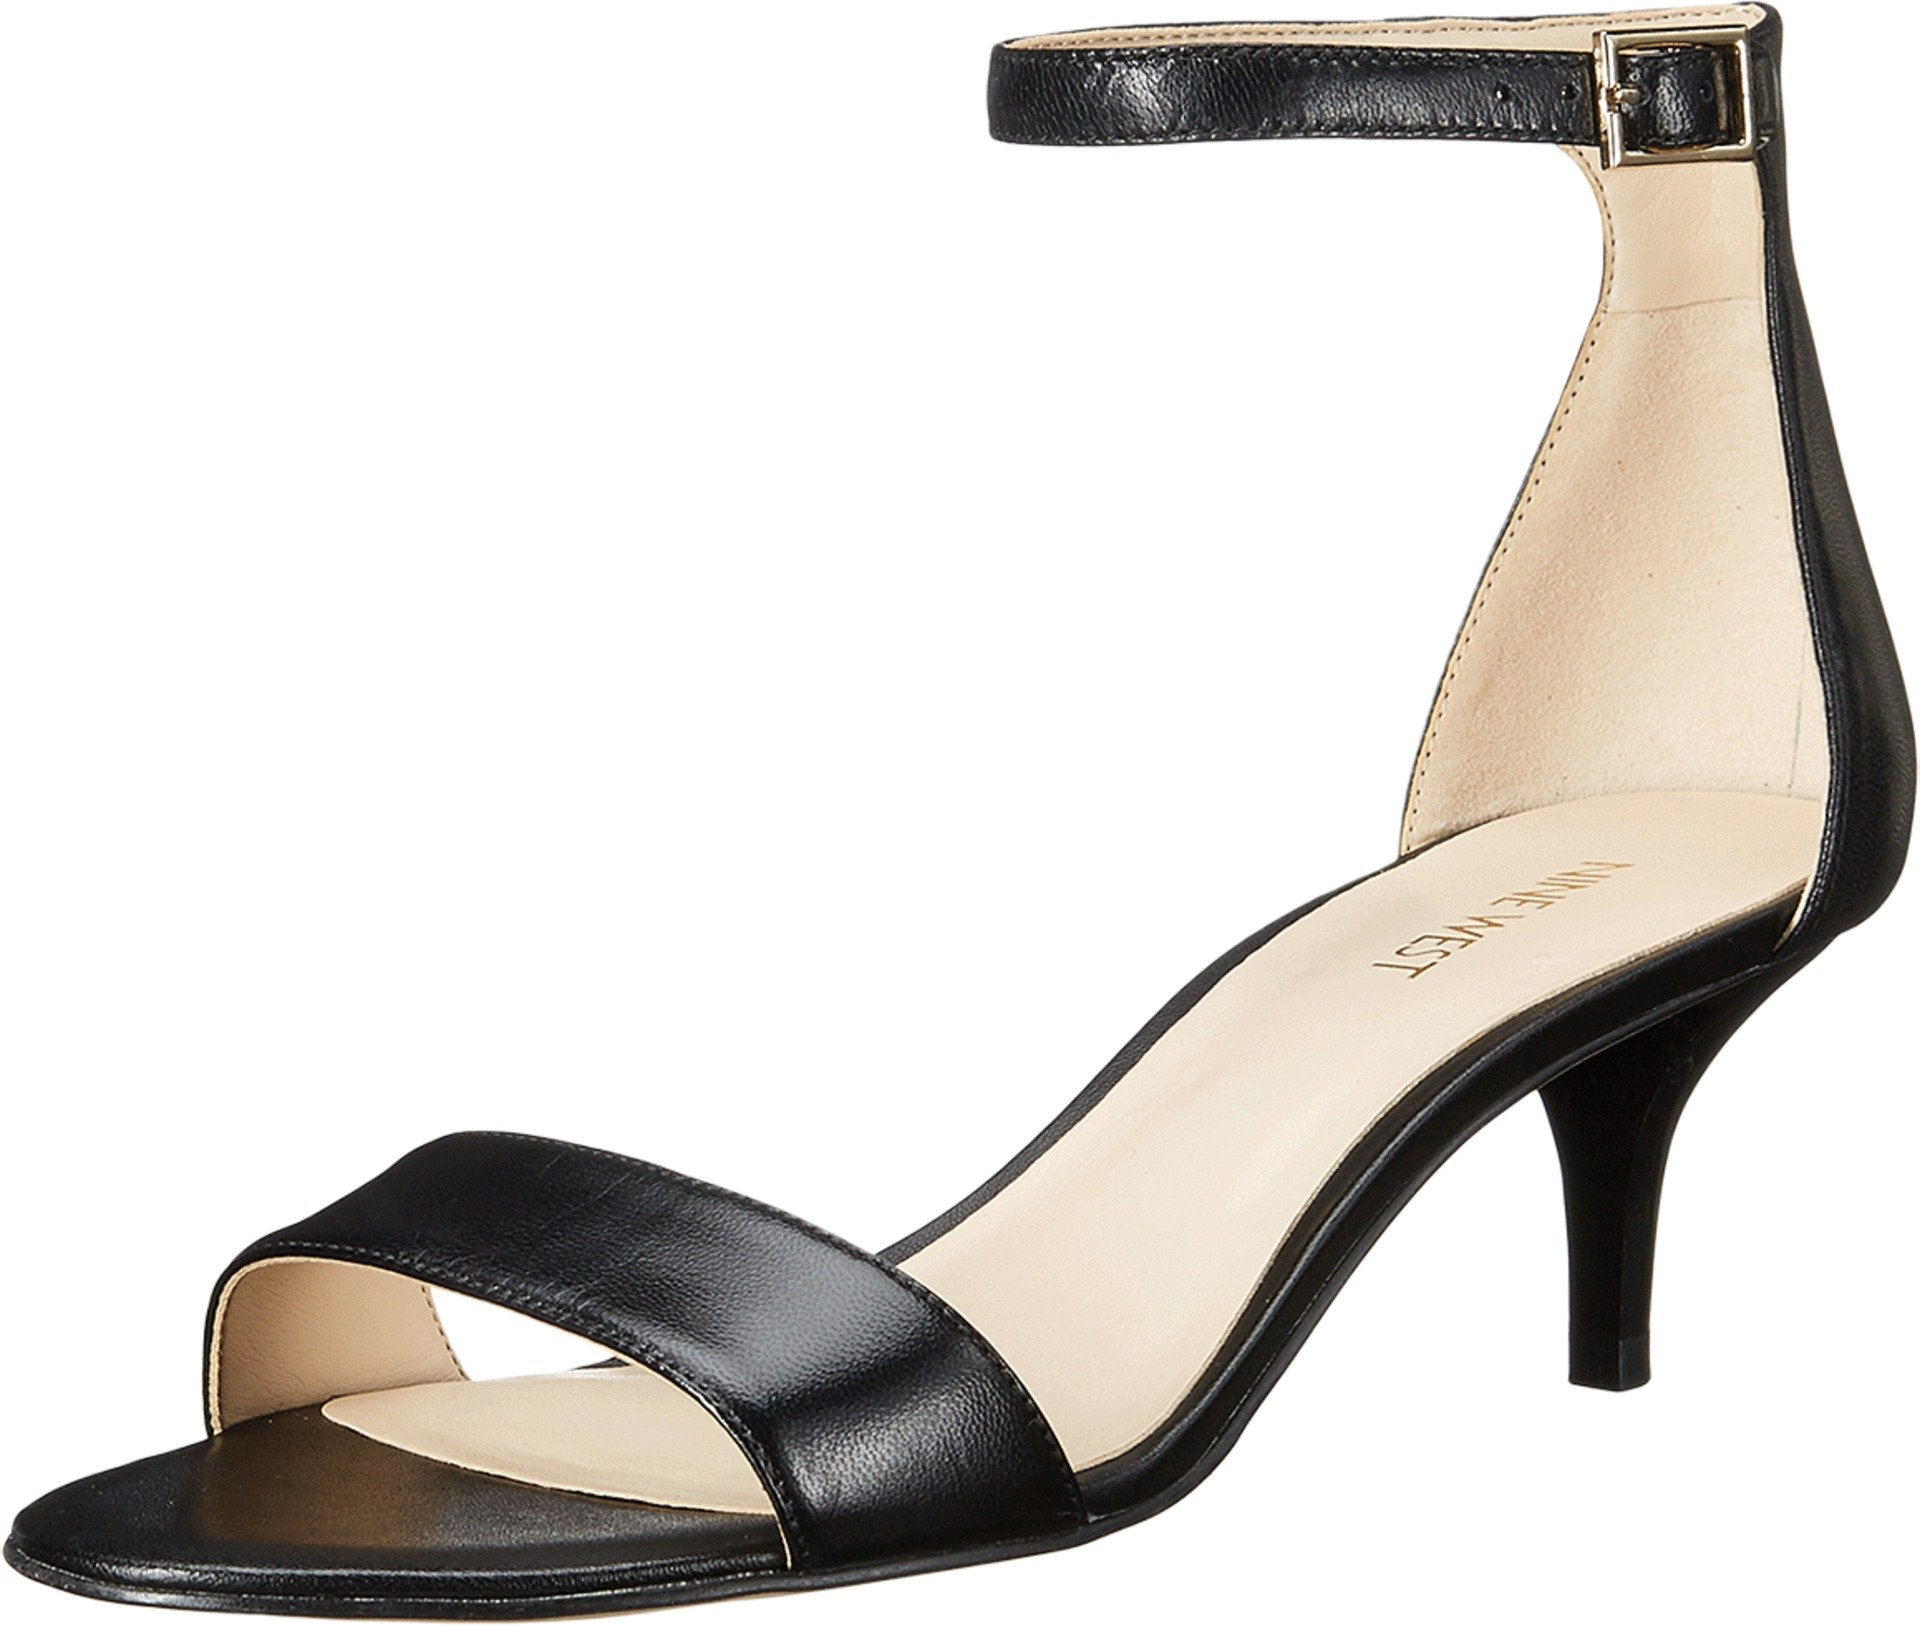 Nine West Women's Leisa Leather Heeled Dress Sandal, Black Leather, 7.5 M US by Nine West (Image #1)